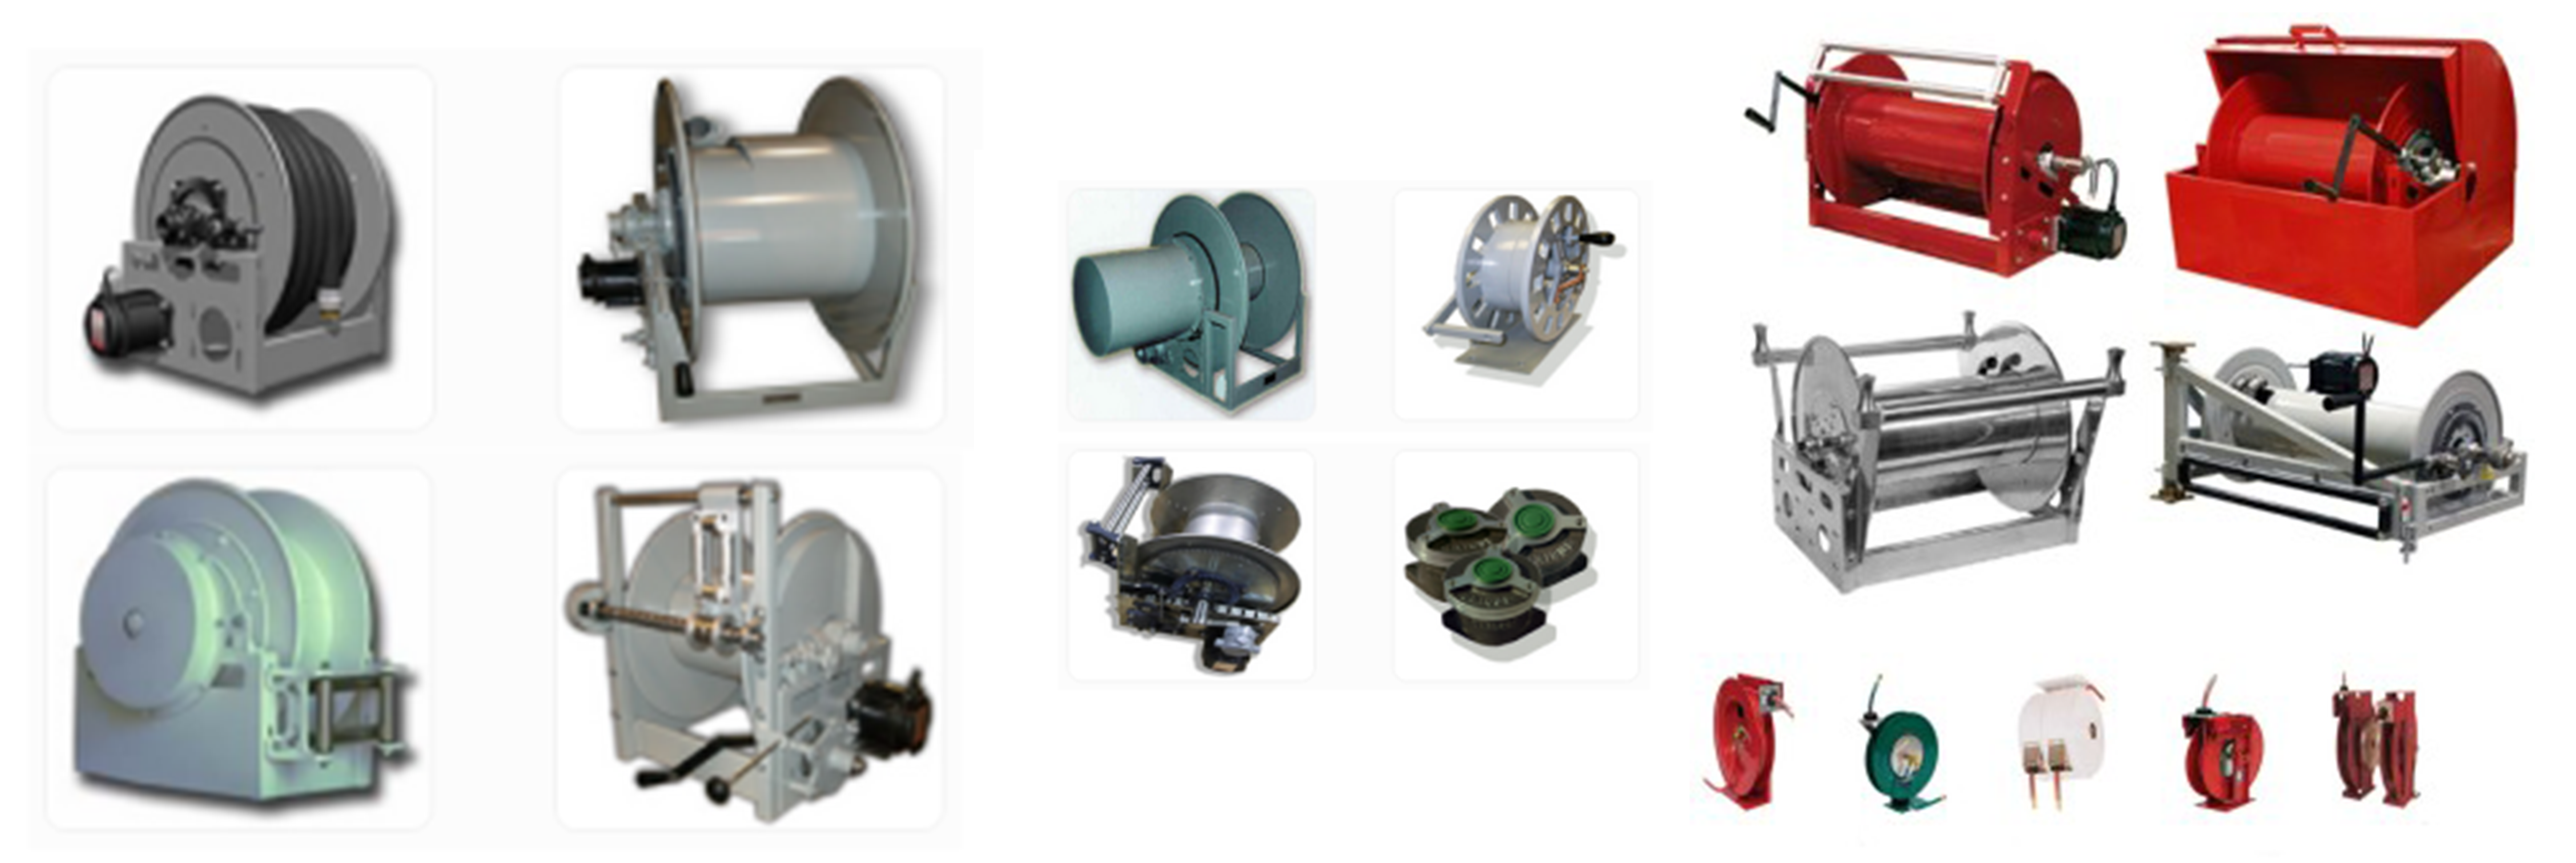 Charmant Hose Reel Manufacturers